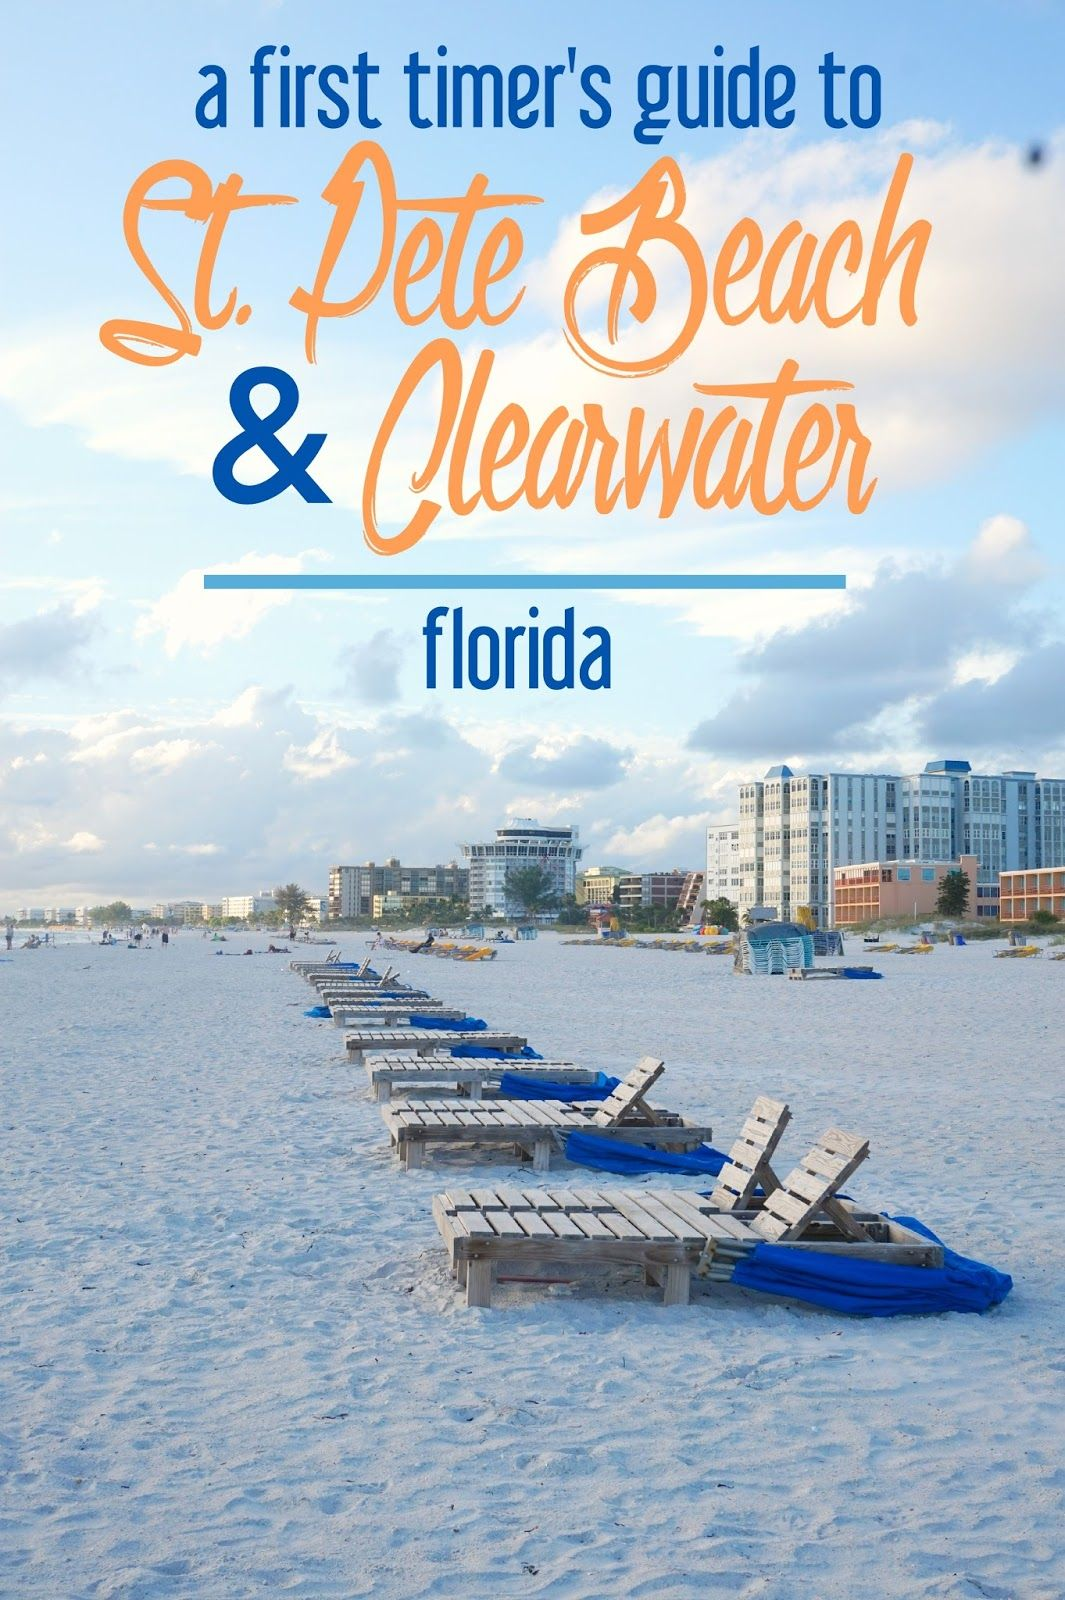 A First-Timer's Guide To St. Pete Beach, Florida: Where To